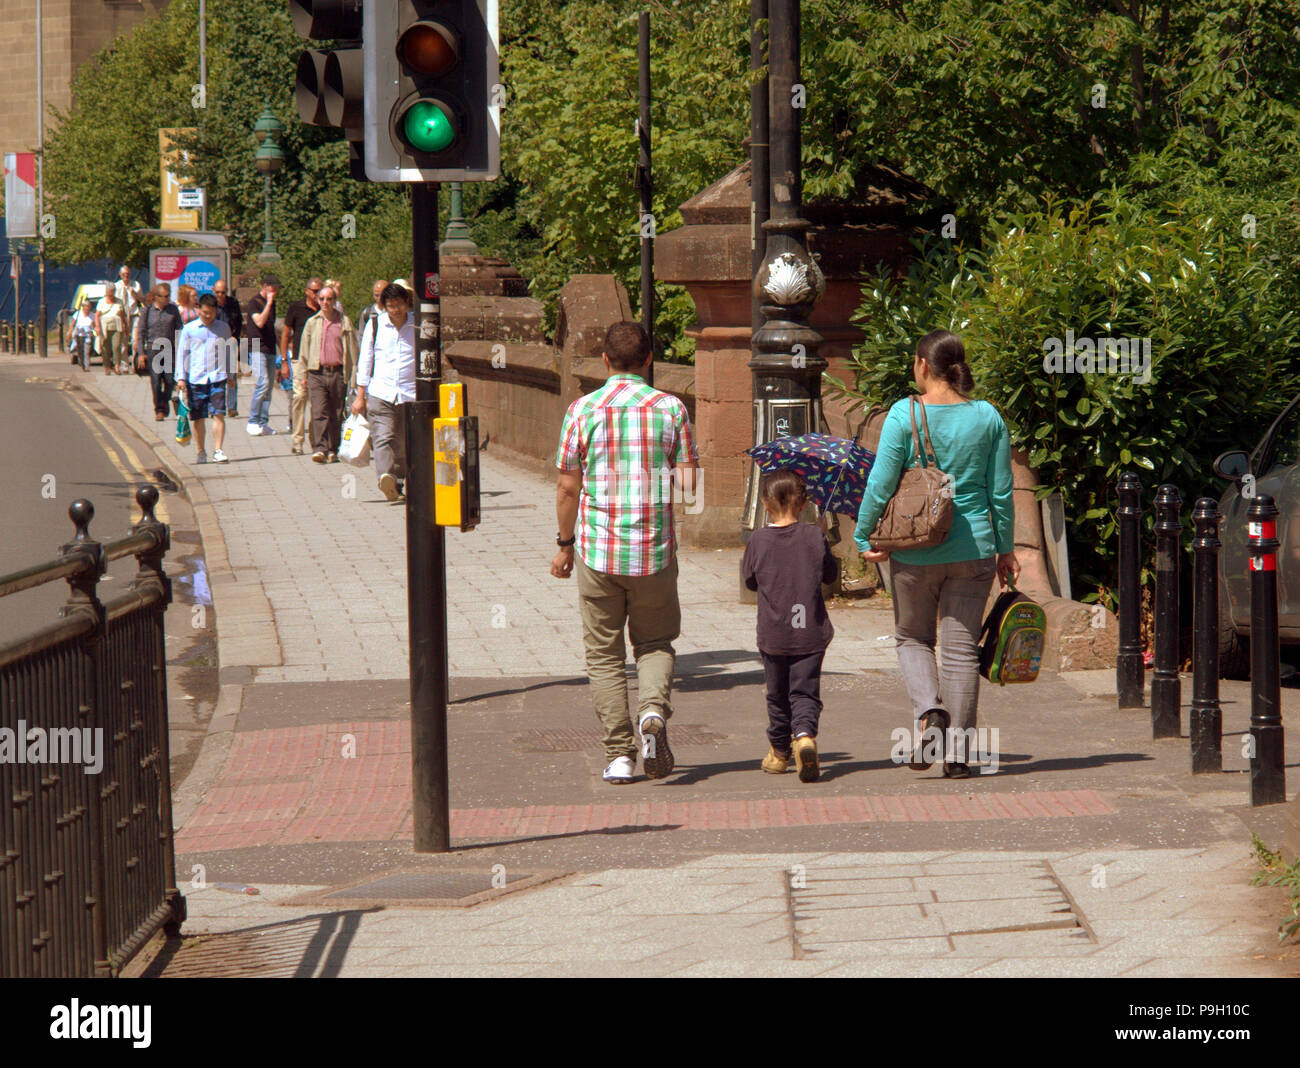 Glasgow, Scotland, UK 18th July. UK Weather:Sunny weather brings out locals and tourists in the city.s Partick in the west end to enjoy the warm weath - Stock Image